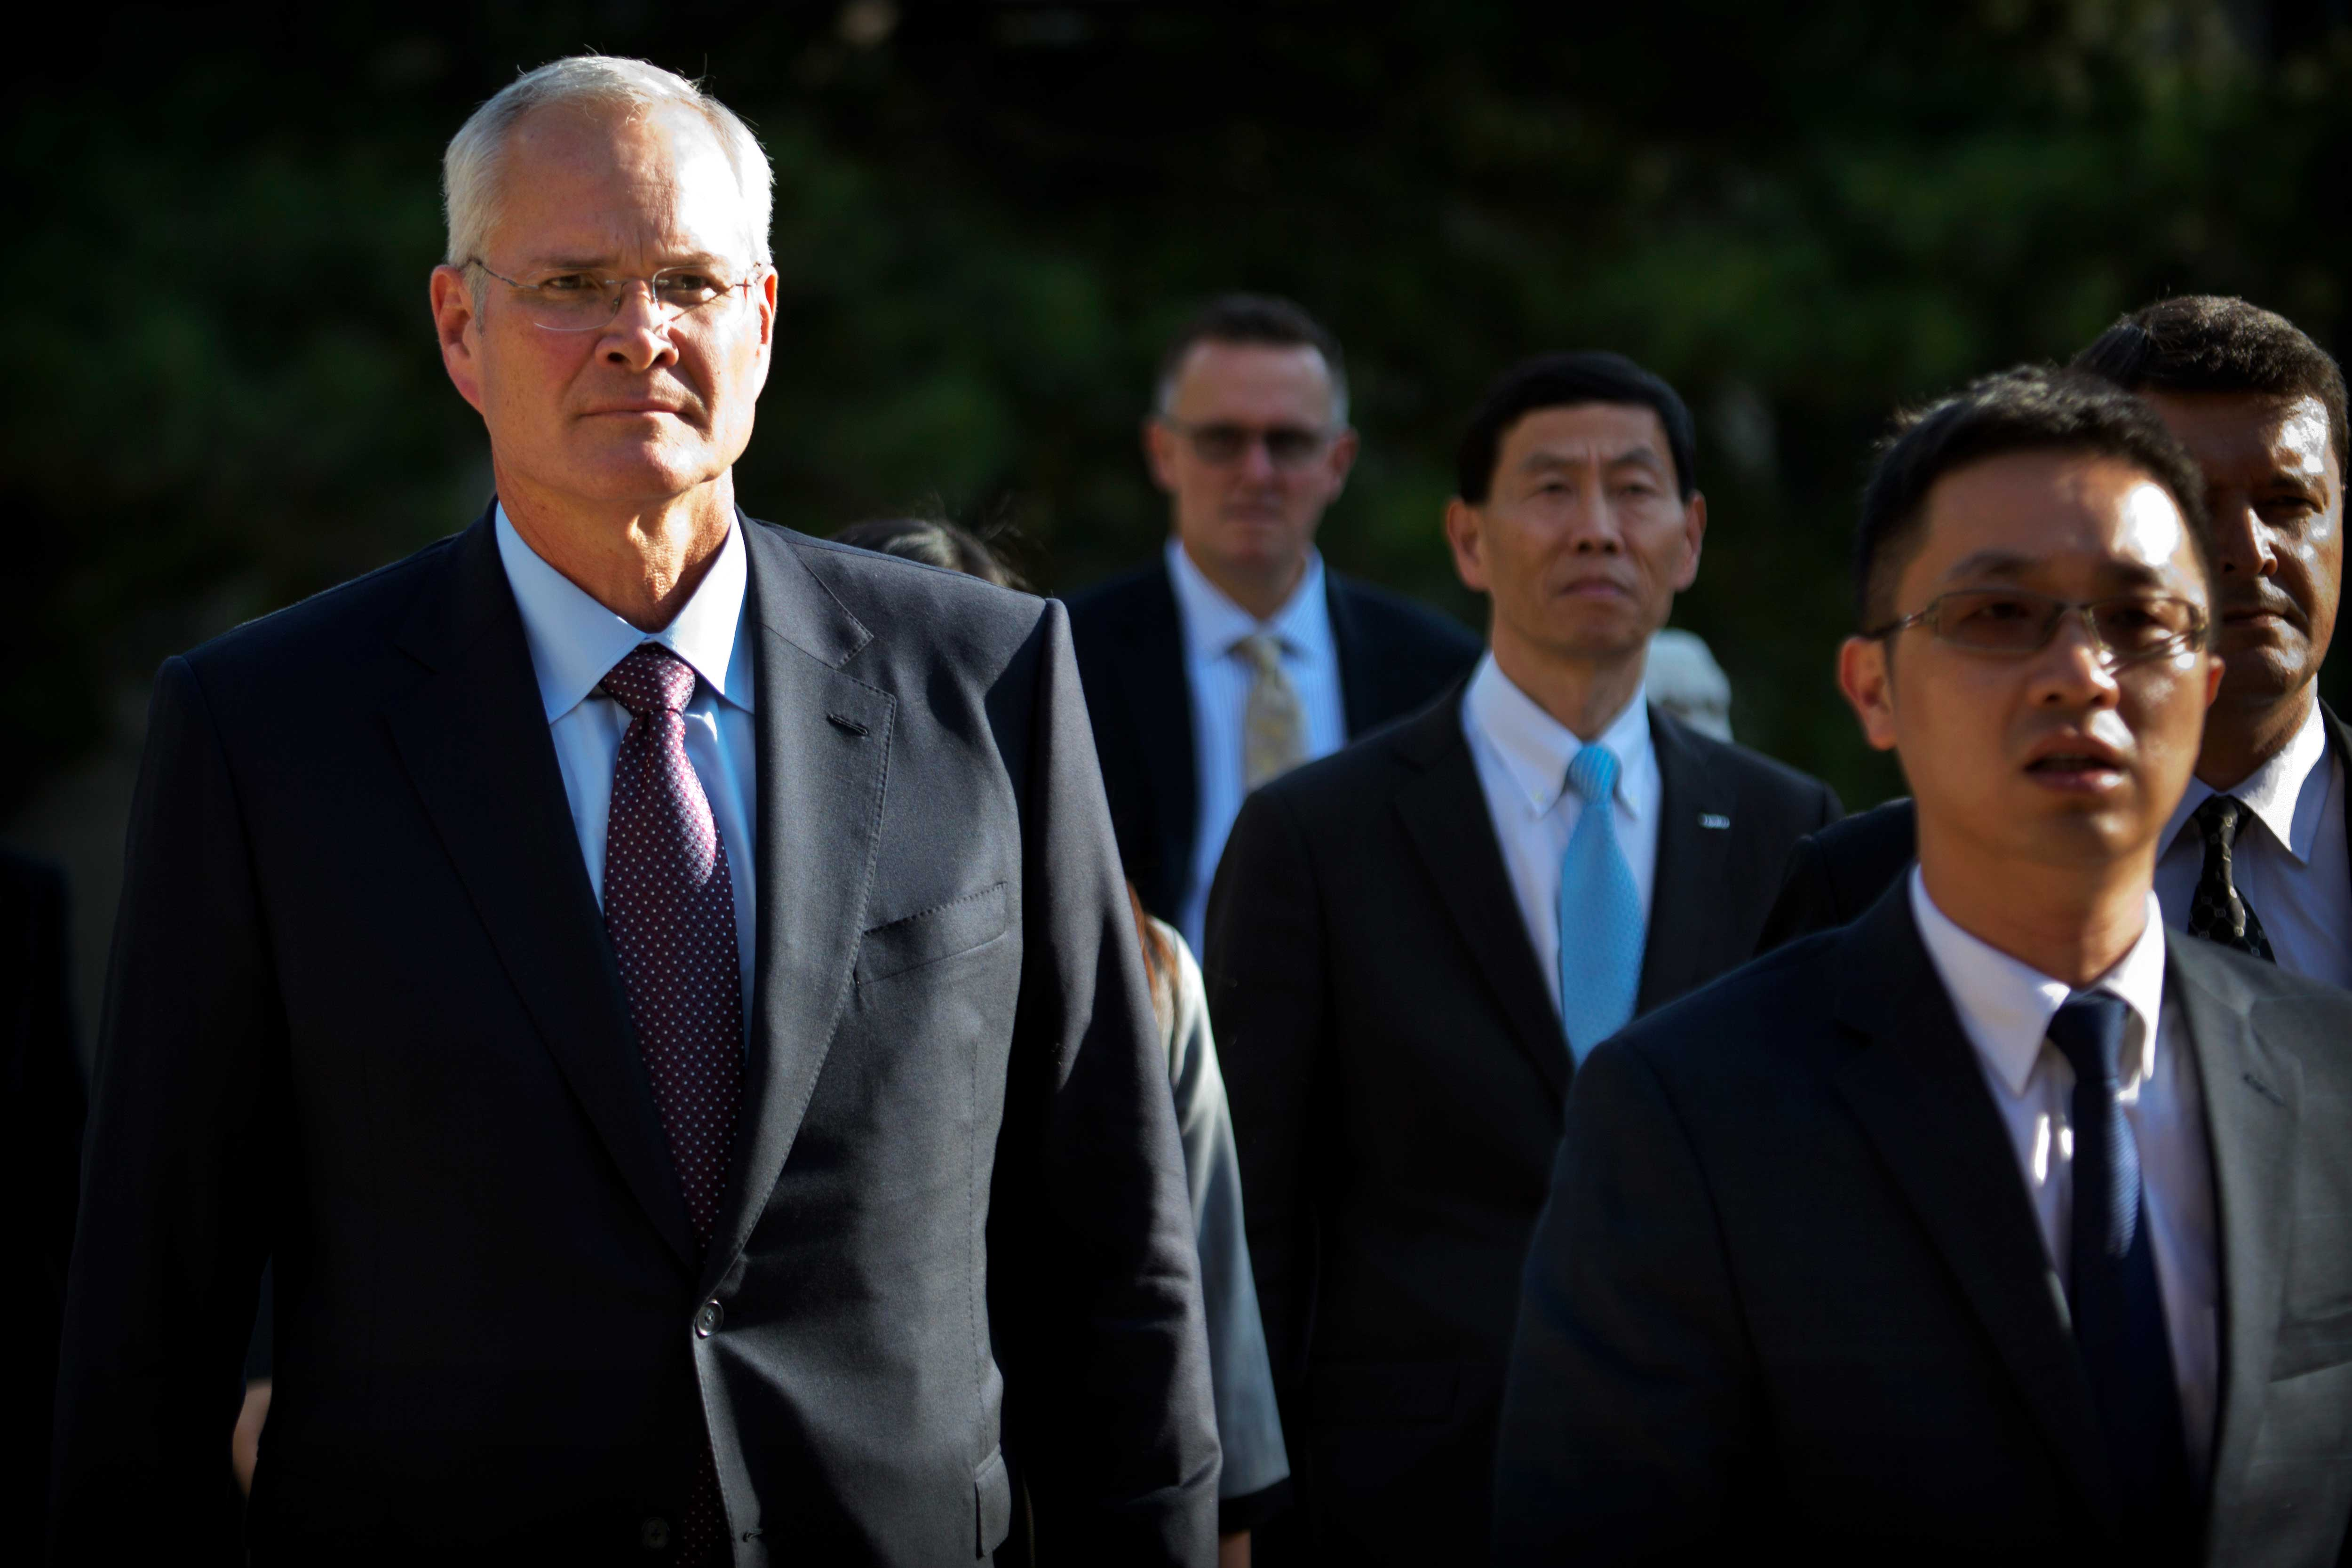 Exxon Mobil chairman and CEO Darren Woods arrives for a meeting with Chinese Premier Li Keqiang at the Zhongnanhai Leadership Compound in Beijing, China on September 7, 2018.